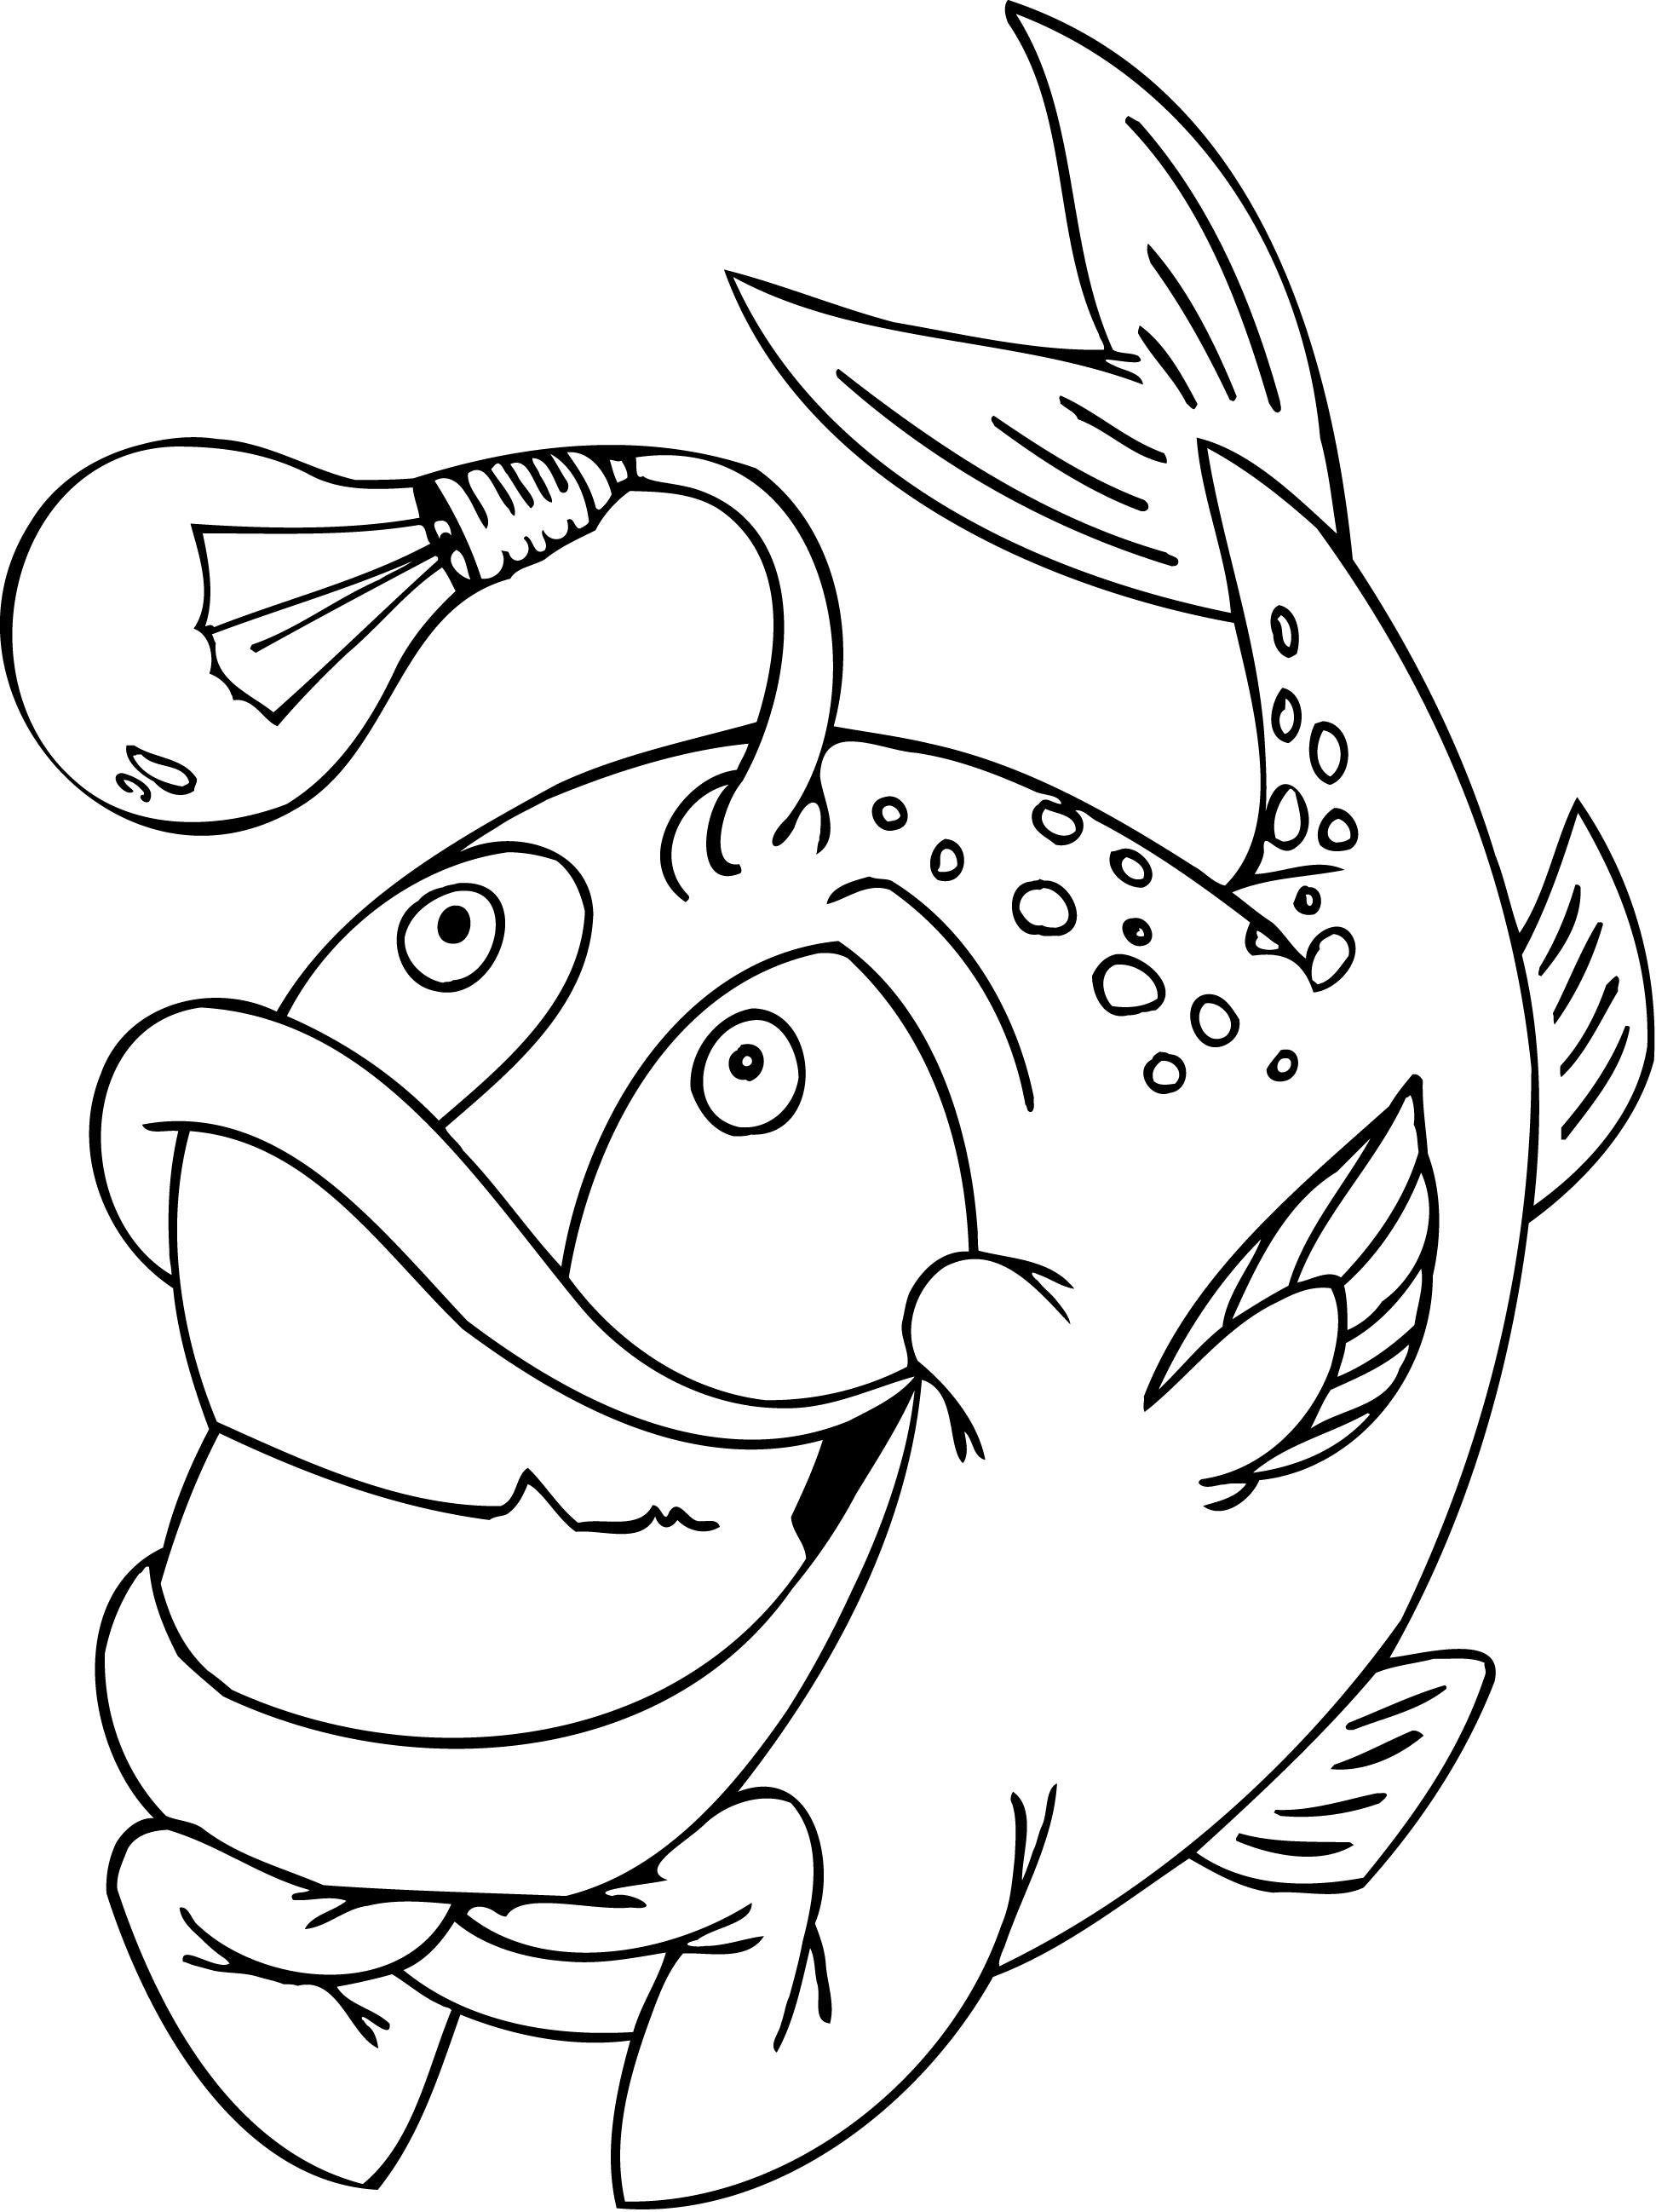 coloring sheets kids 40 exclusive kids coloring pages ideas we need fun sheets kids coloring